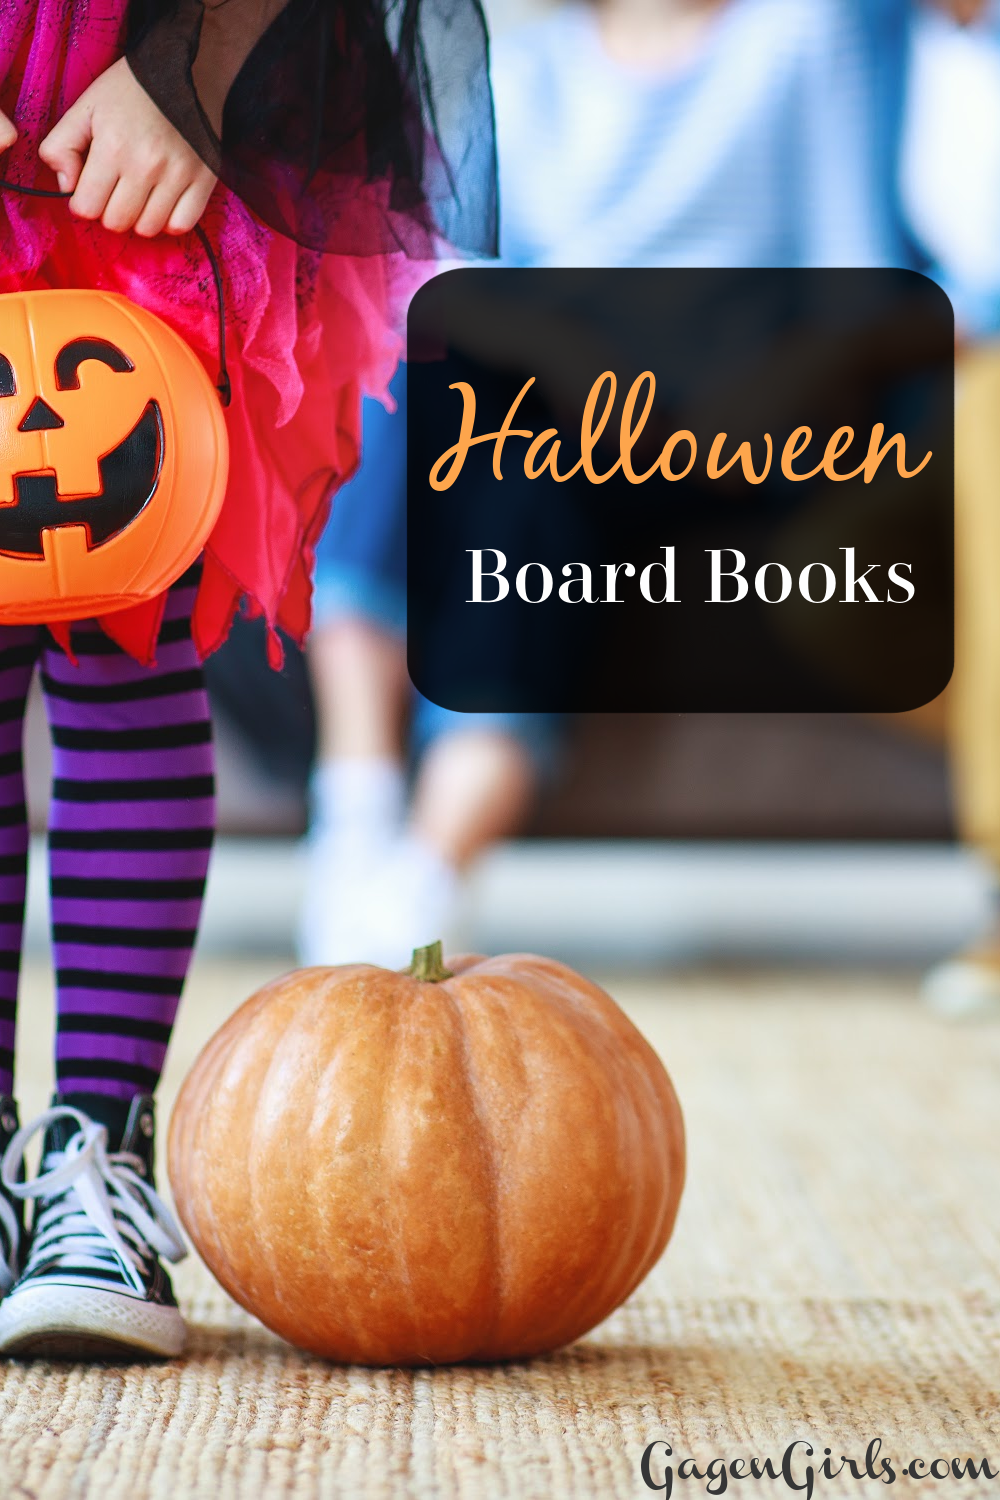 Halloween Board Books at GagenGirls.com